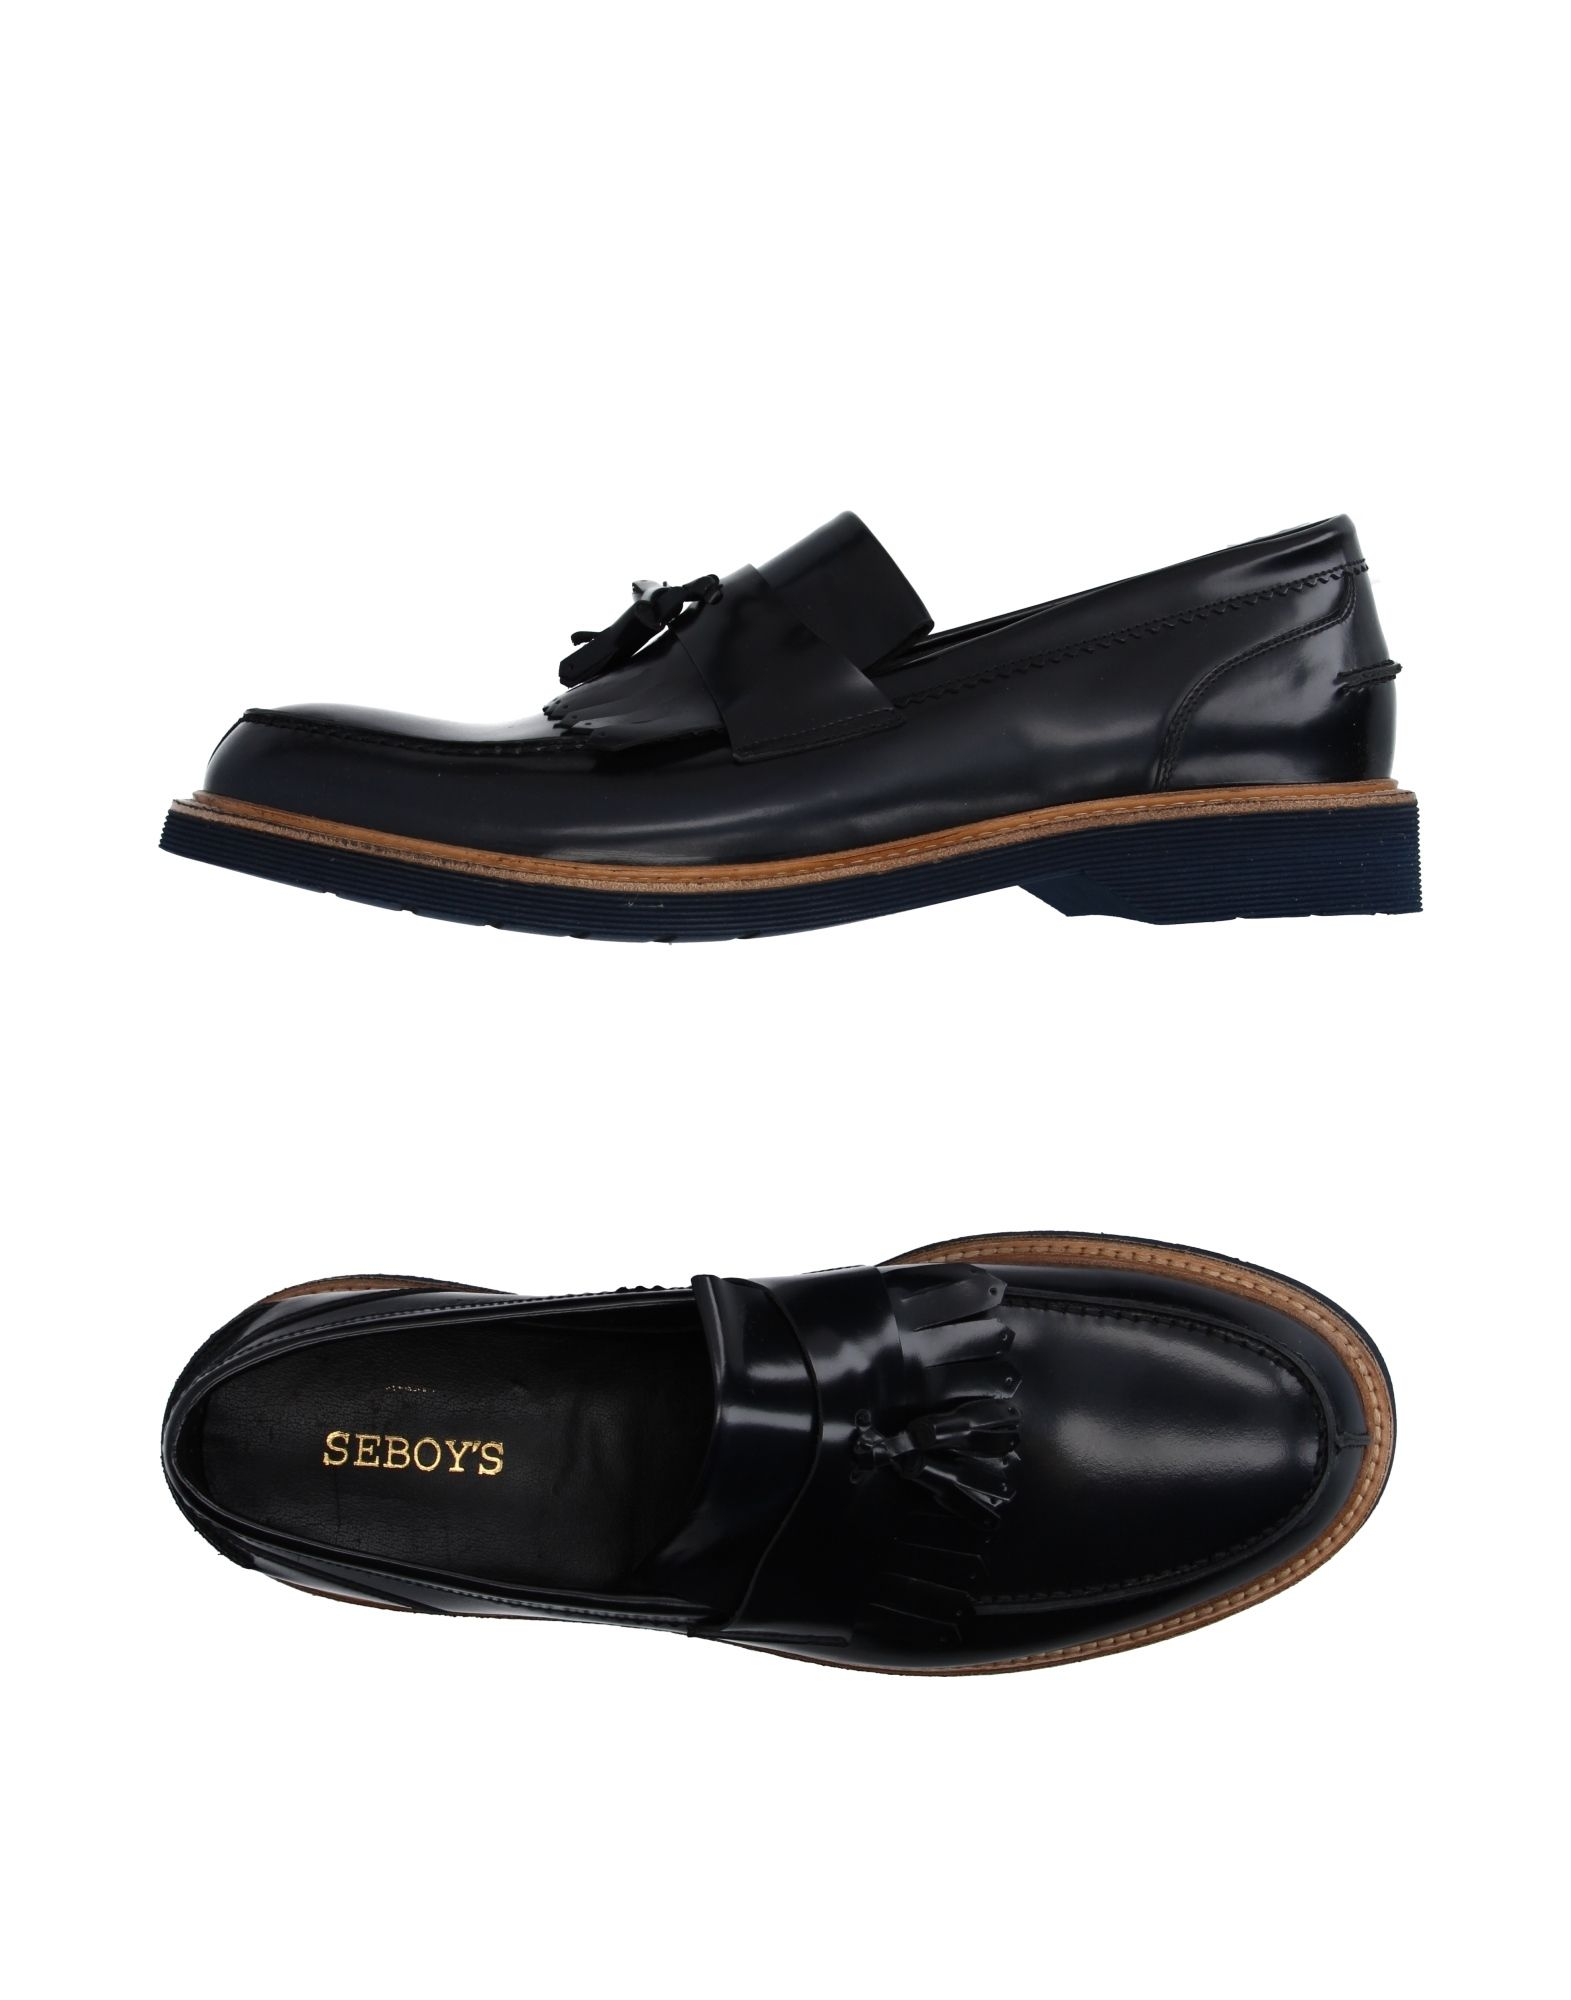 Oxfords & Loafers - Buy Best Oxfords & Loafers from Fashion Influencers |  Brick & Portal